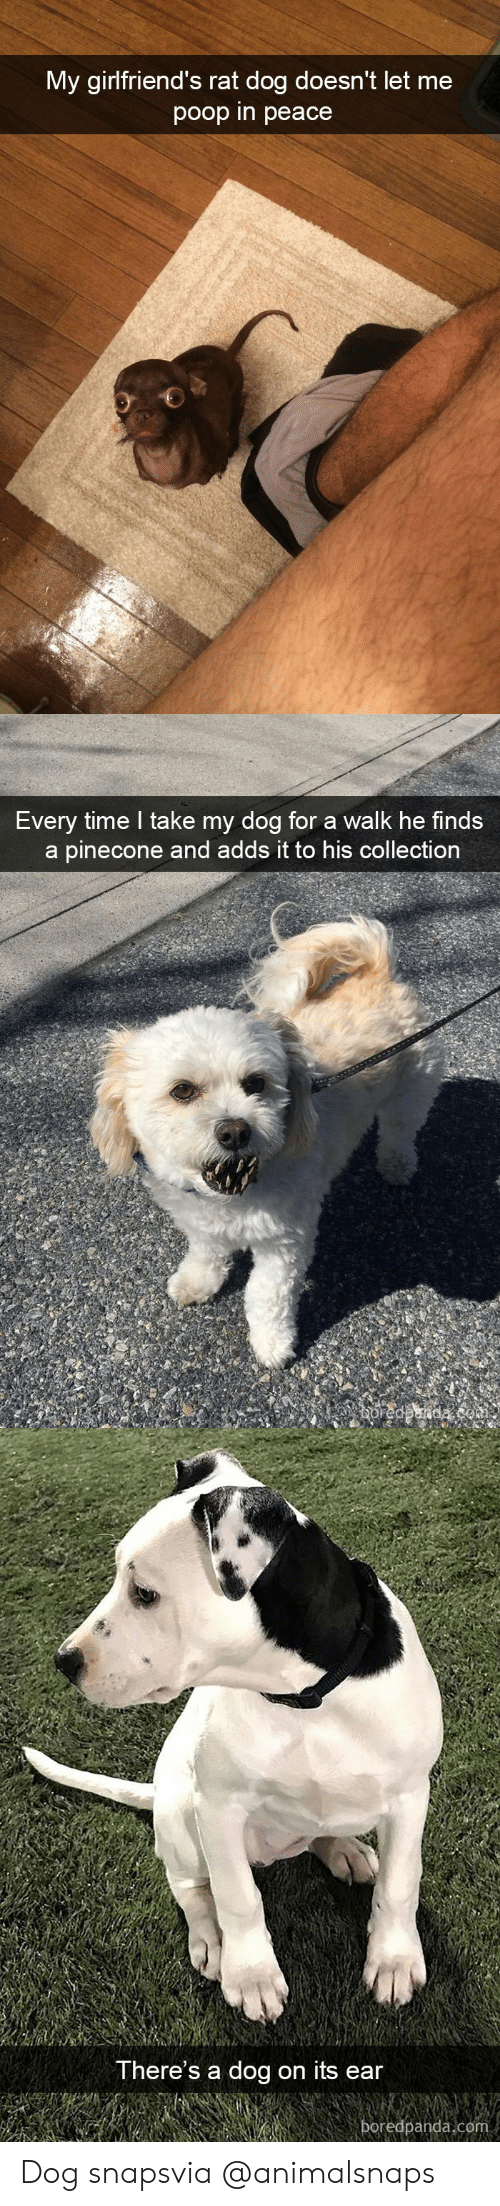 Poop, Target, and Tumblr: My girlfriend's rat dog doesn't let me  poop in peace   Every time l take my dog for a walk he finds  a pinecone and adds it to his collection   There's a dog on its ear  boredpanda.com Dog snapsvia @animalsnaps